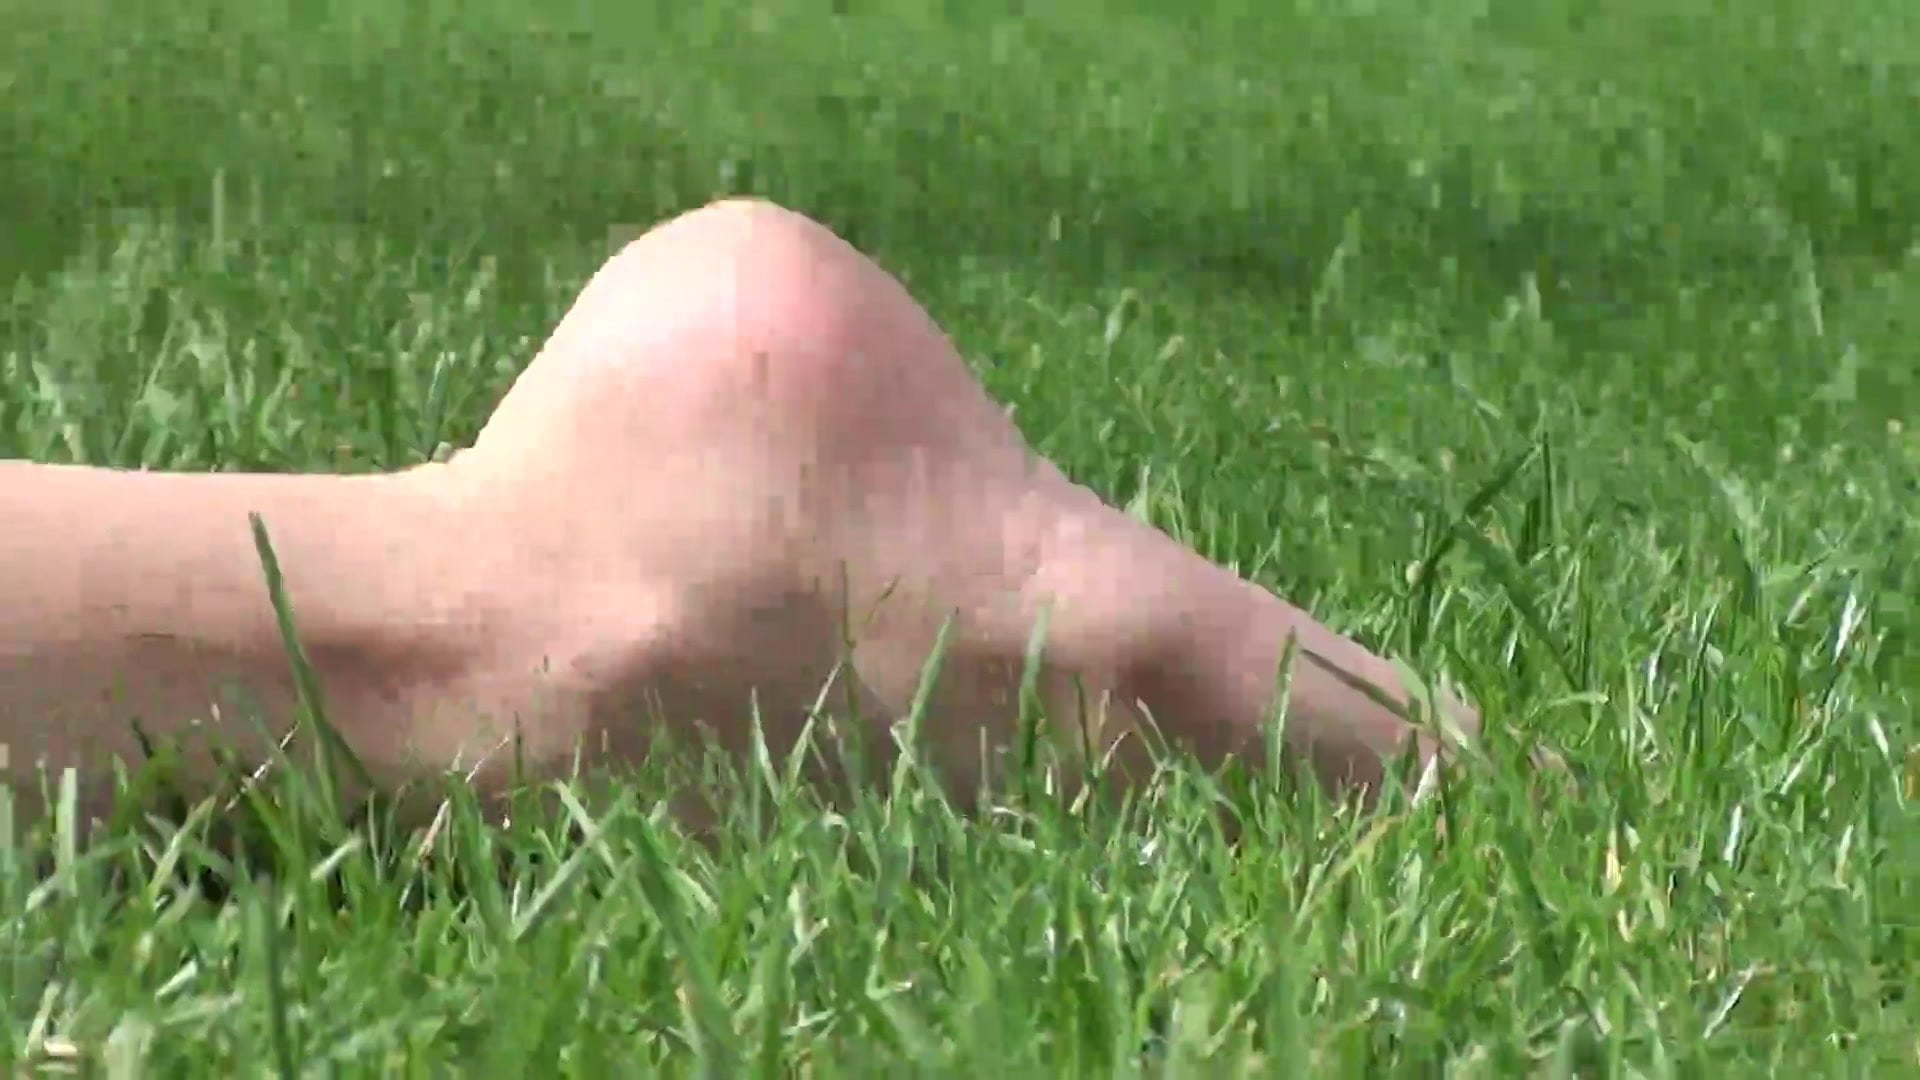 Candid Feet in Park #3